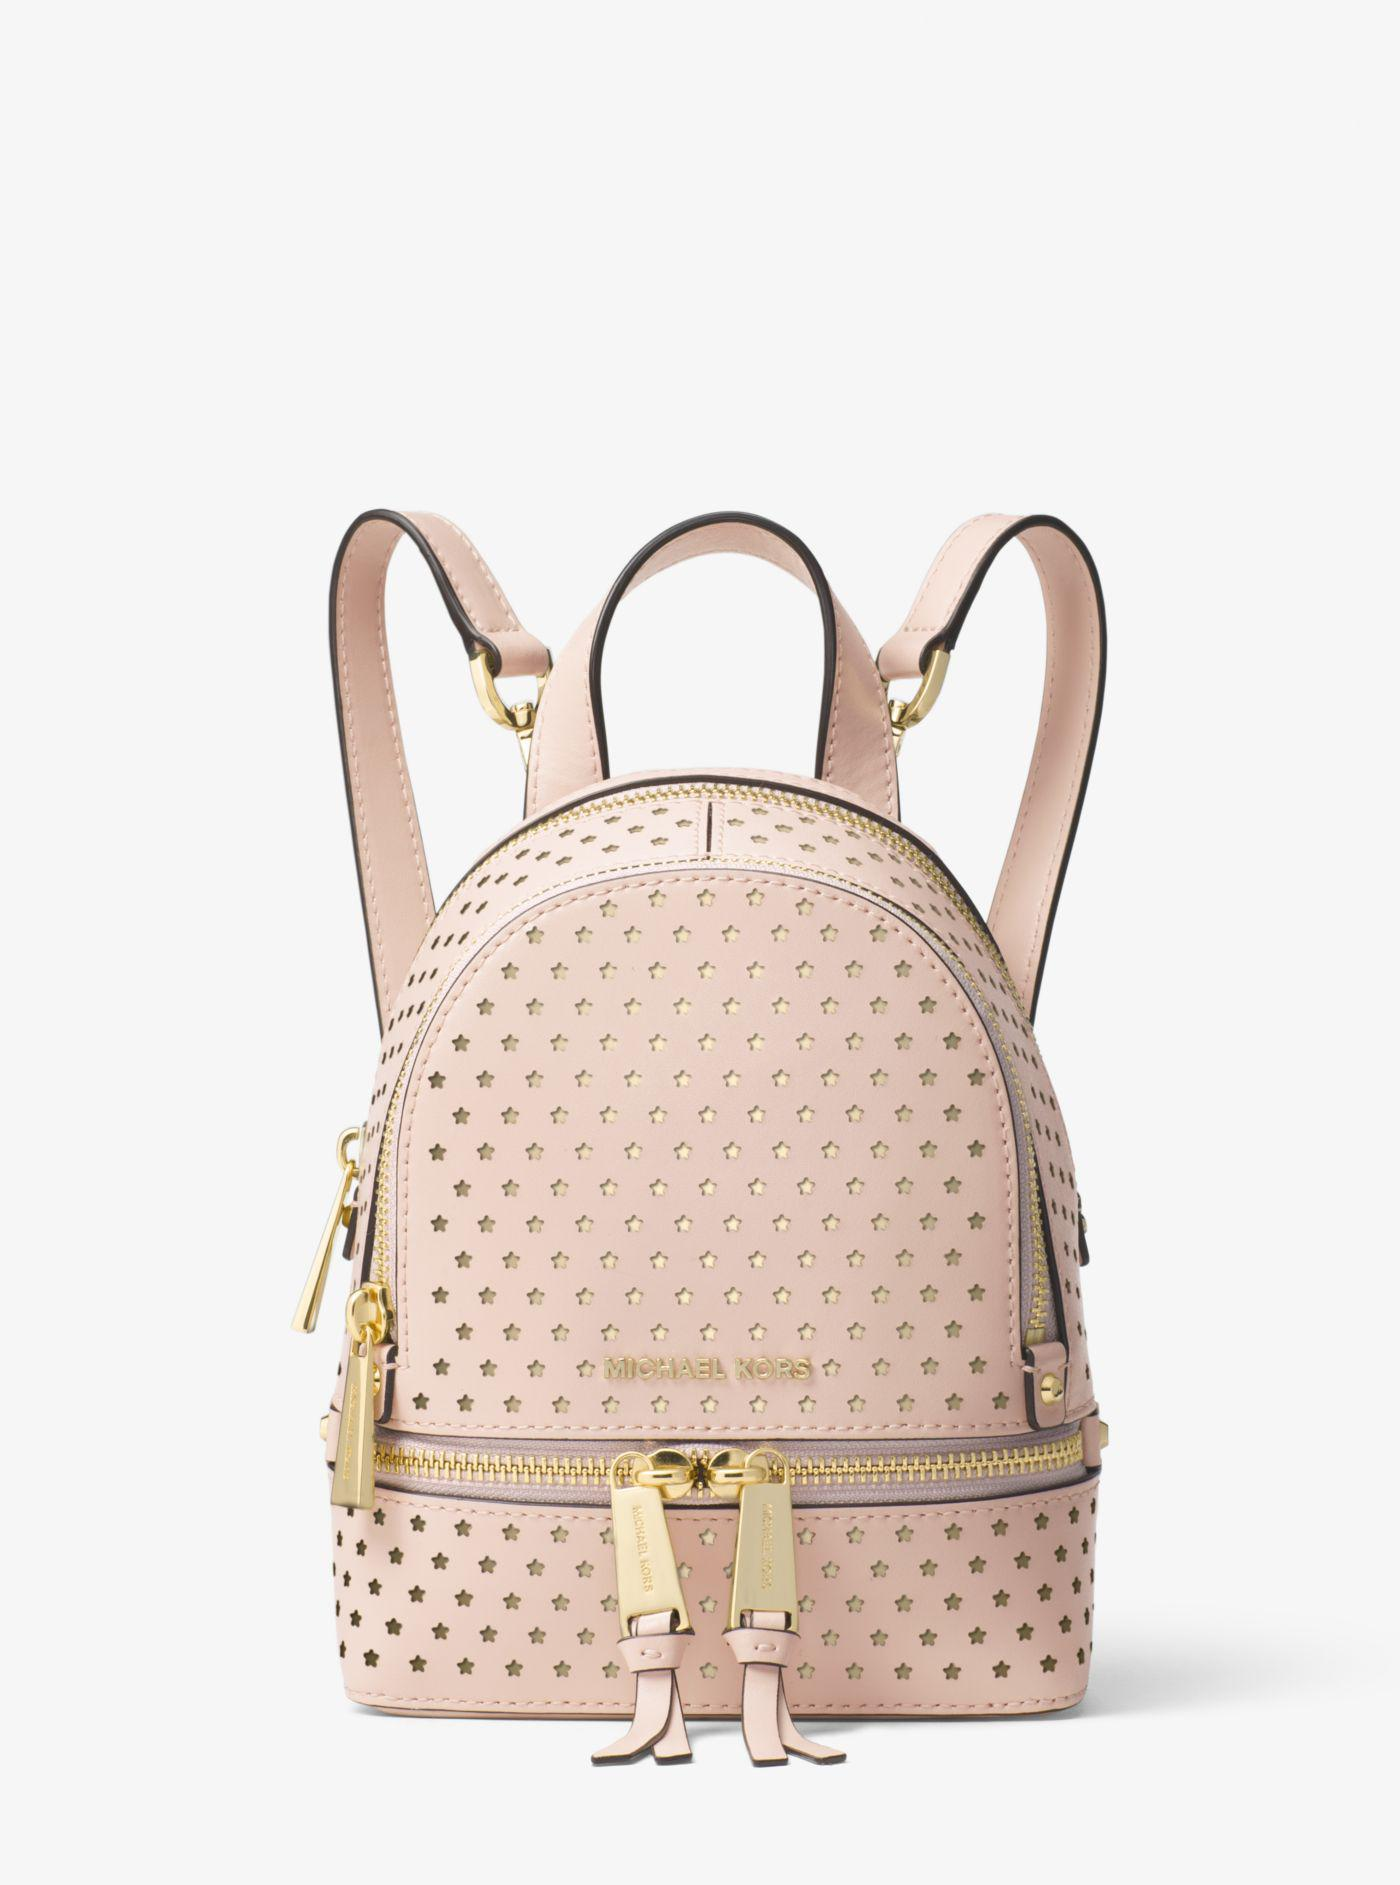 014b4af09a82 Gallery. Previously sold at  Michael Kors · Women s Mini Backpack ...